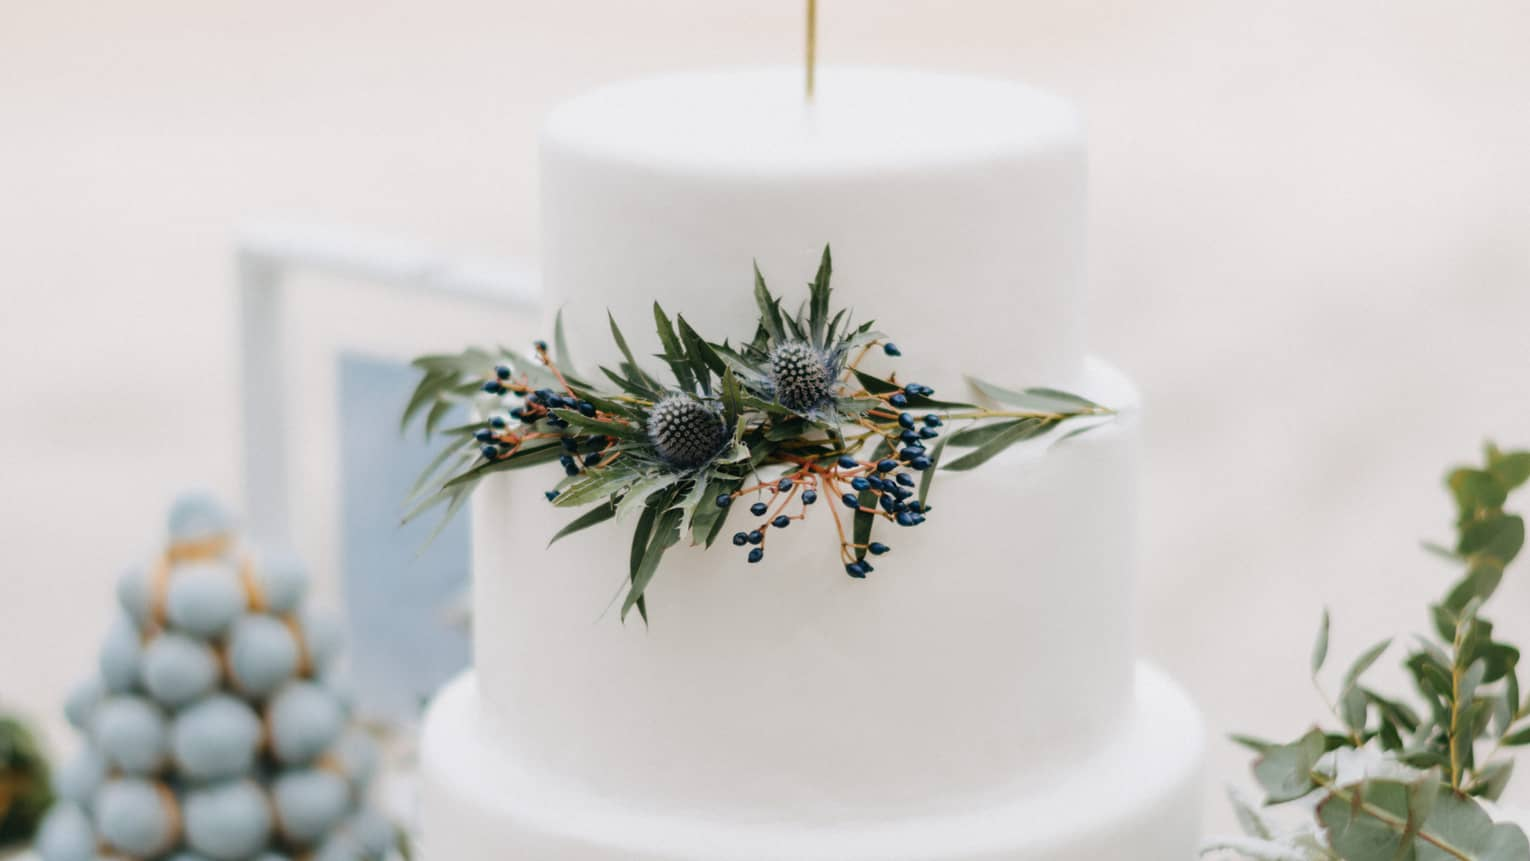 Three tiered wedding cake decorated with green leaves, white flowers